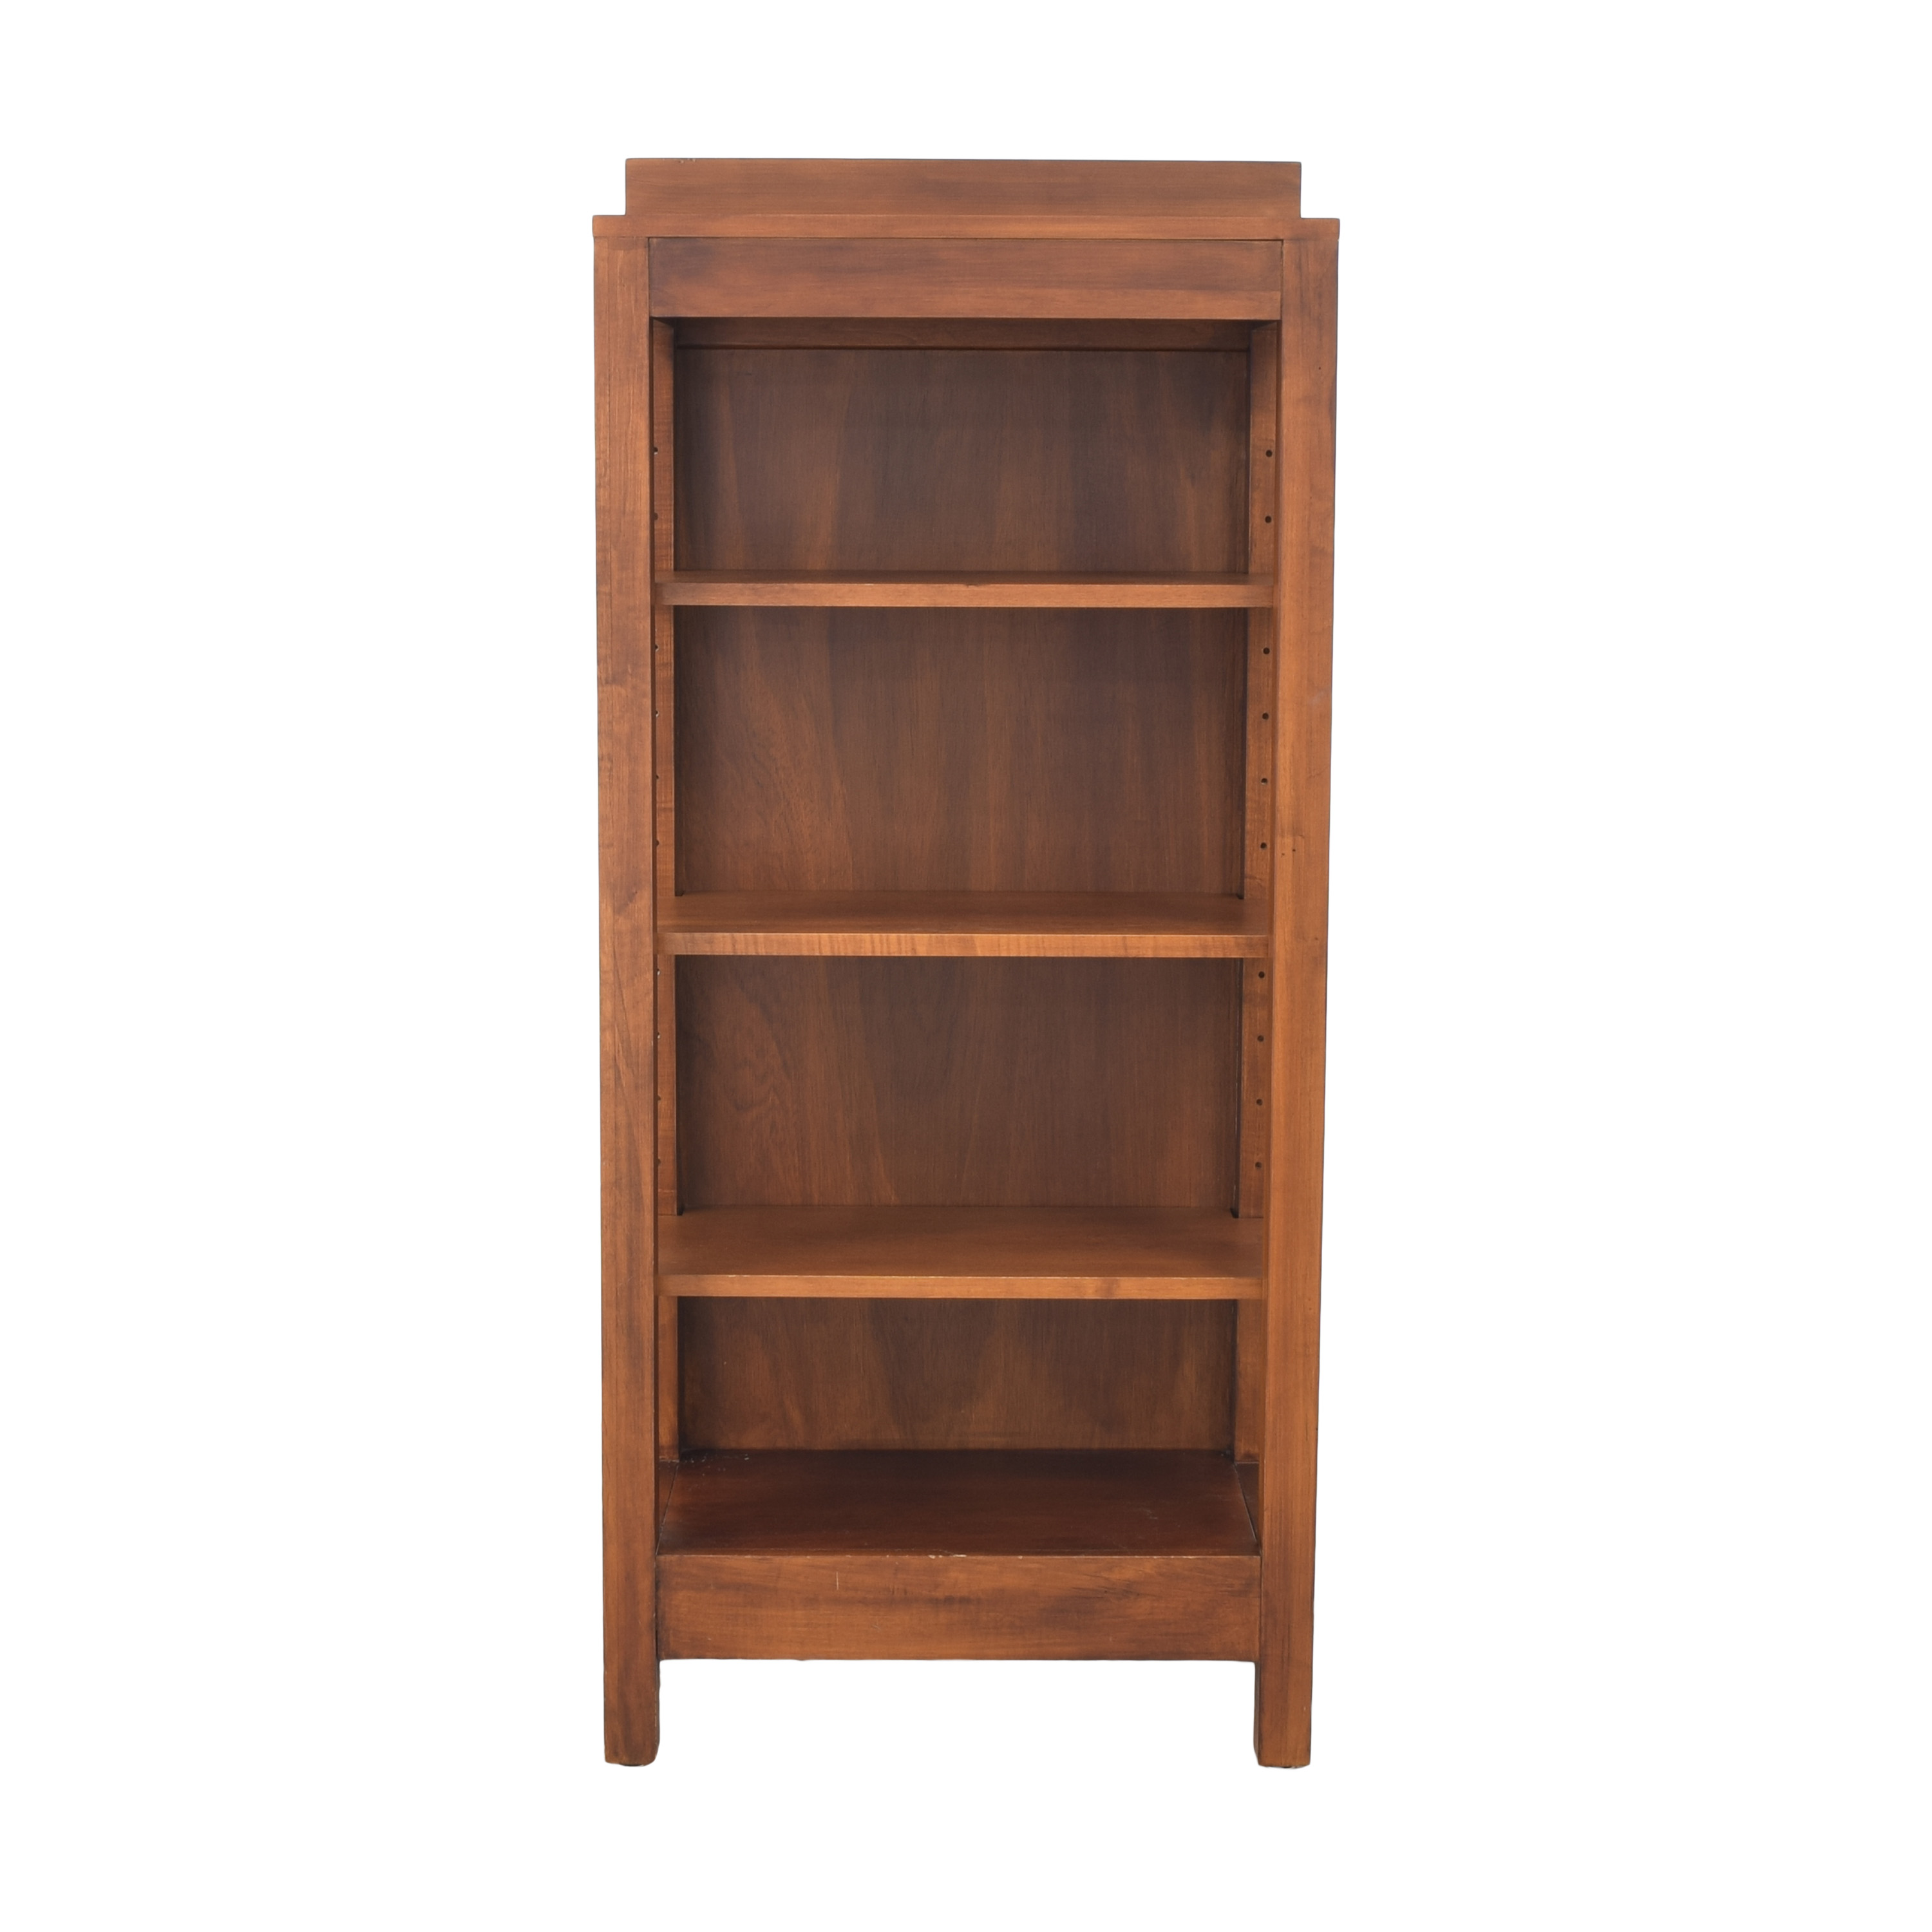 buy Crate & Barrel by Romweber Bookcase Crate & Barrel Storage